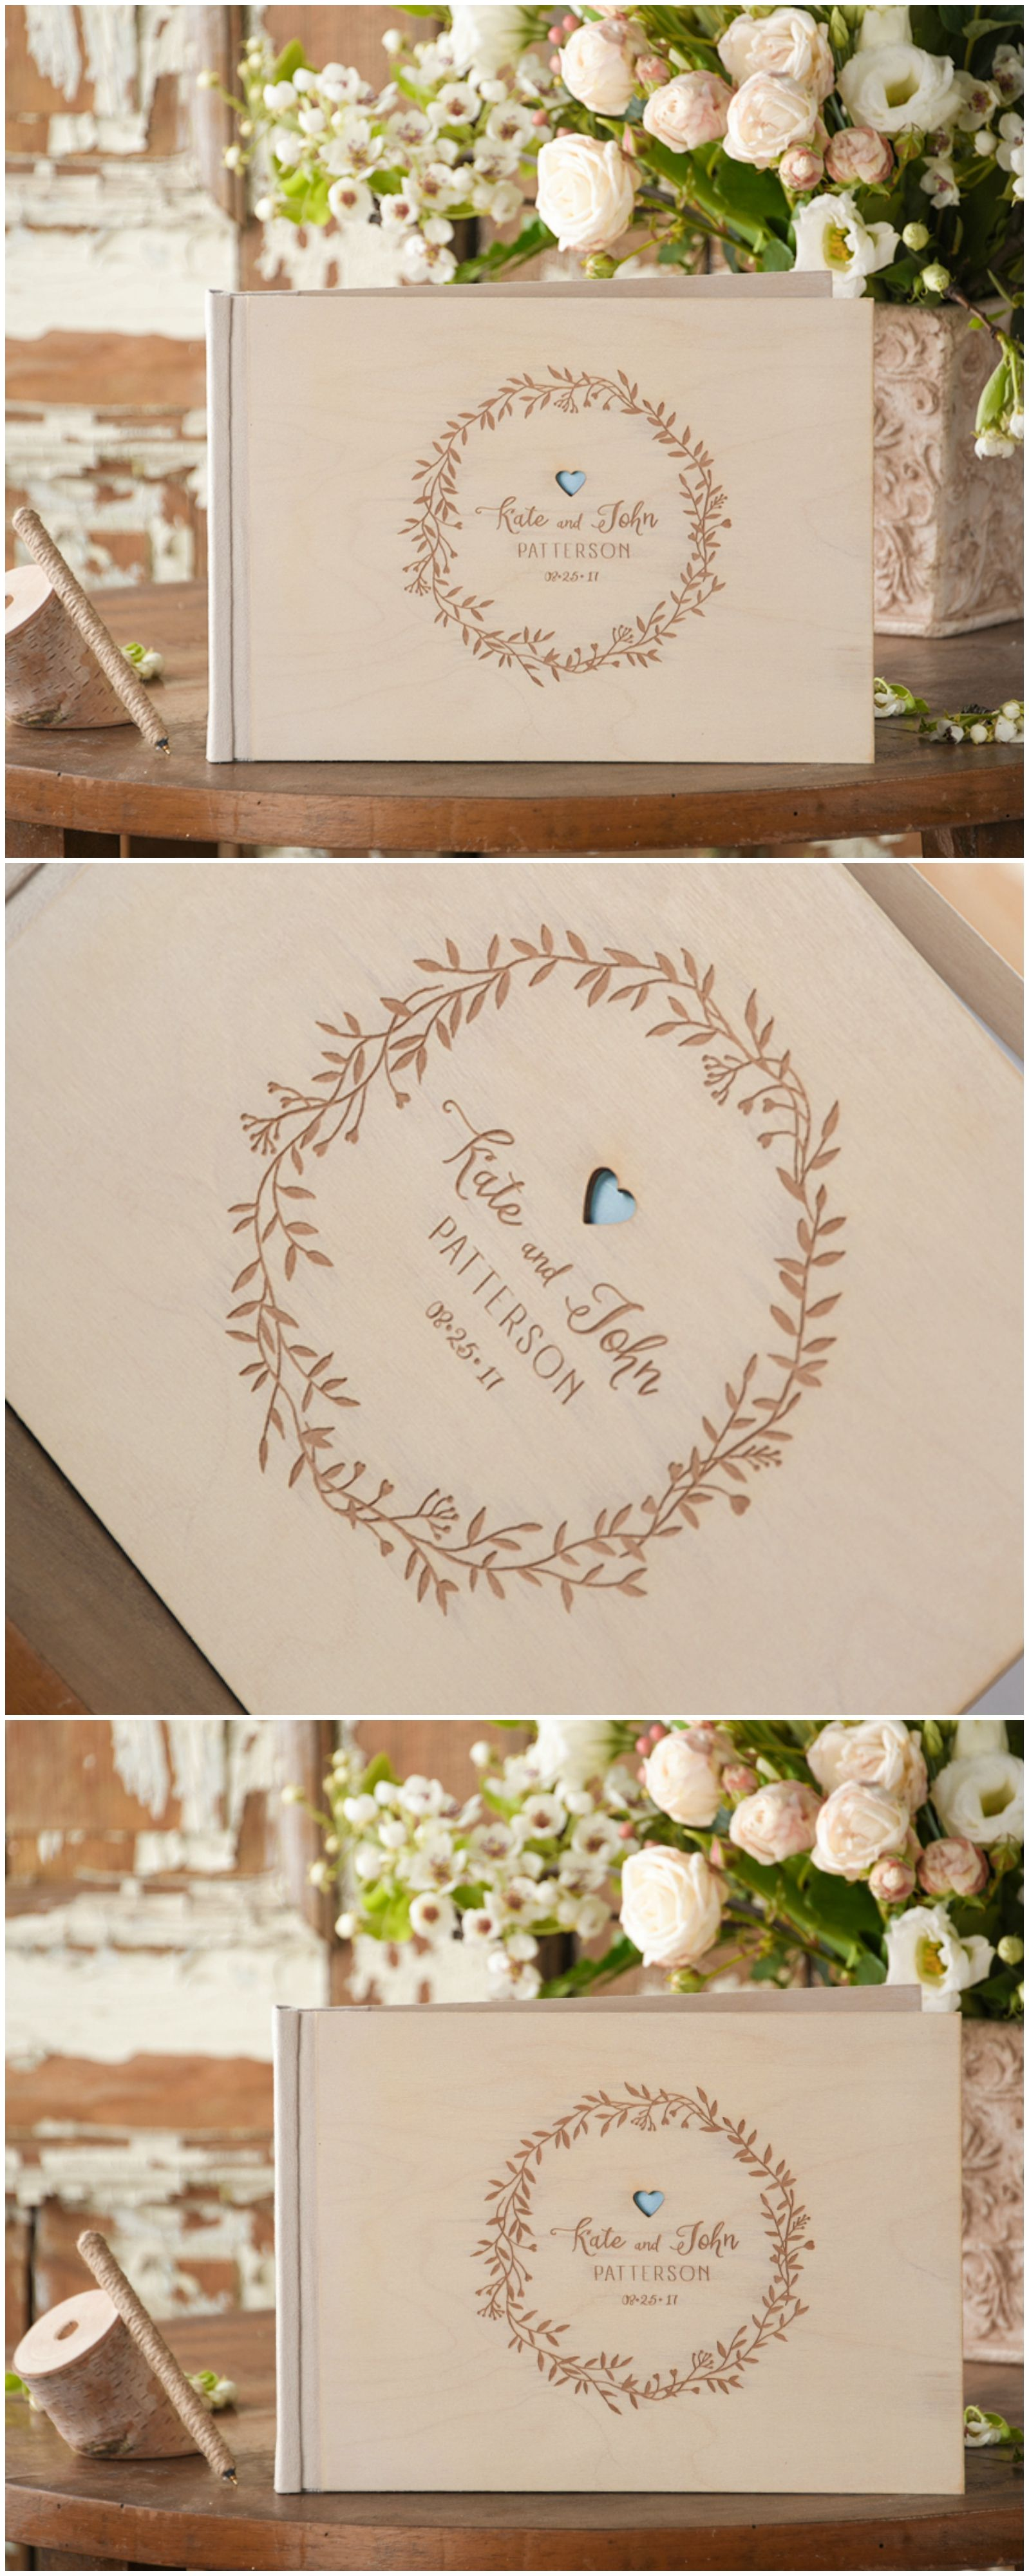 Wedding Wooden Guest Book with custom engraving #wood #rustic #boho ...